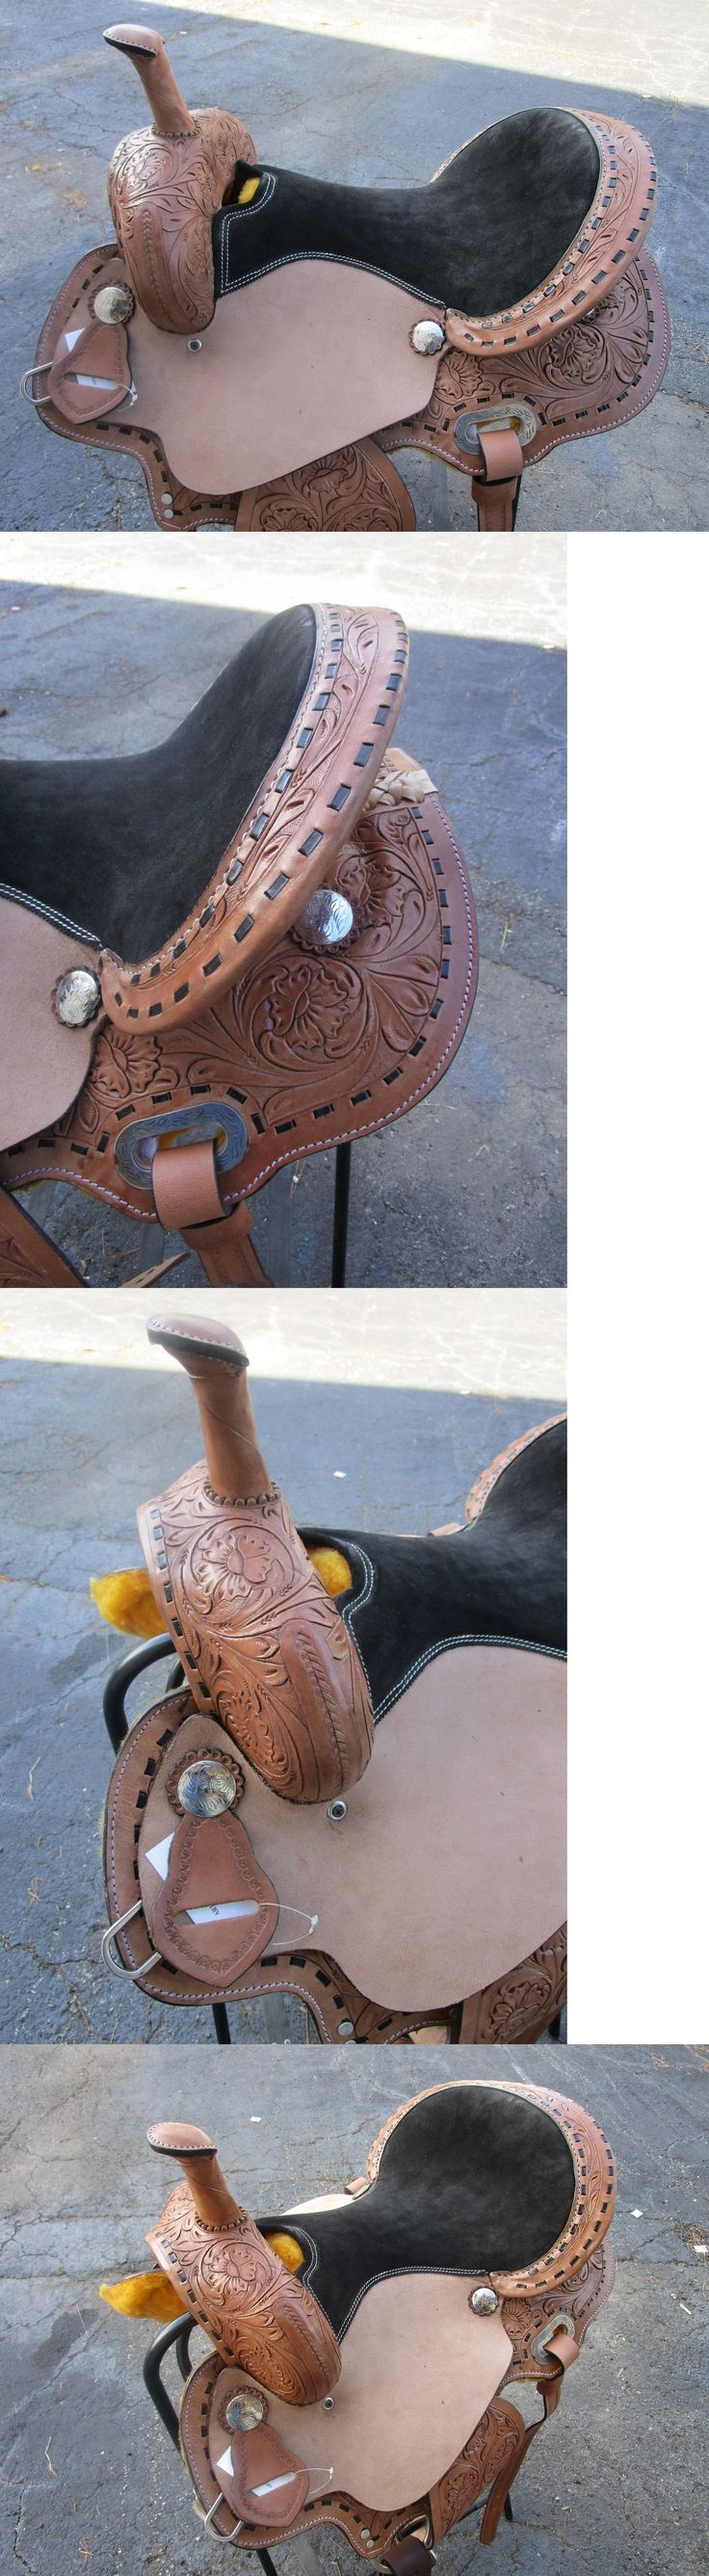 Saddles 47291: 16 Barrel Racing Show Buckstitch Pleasure Tooled Leather Western Horse Saddle BUY IT NOW ONLY: $278.99